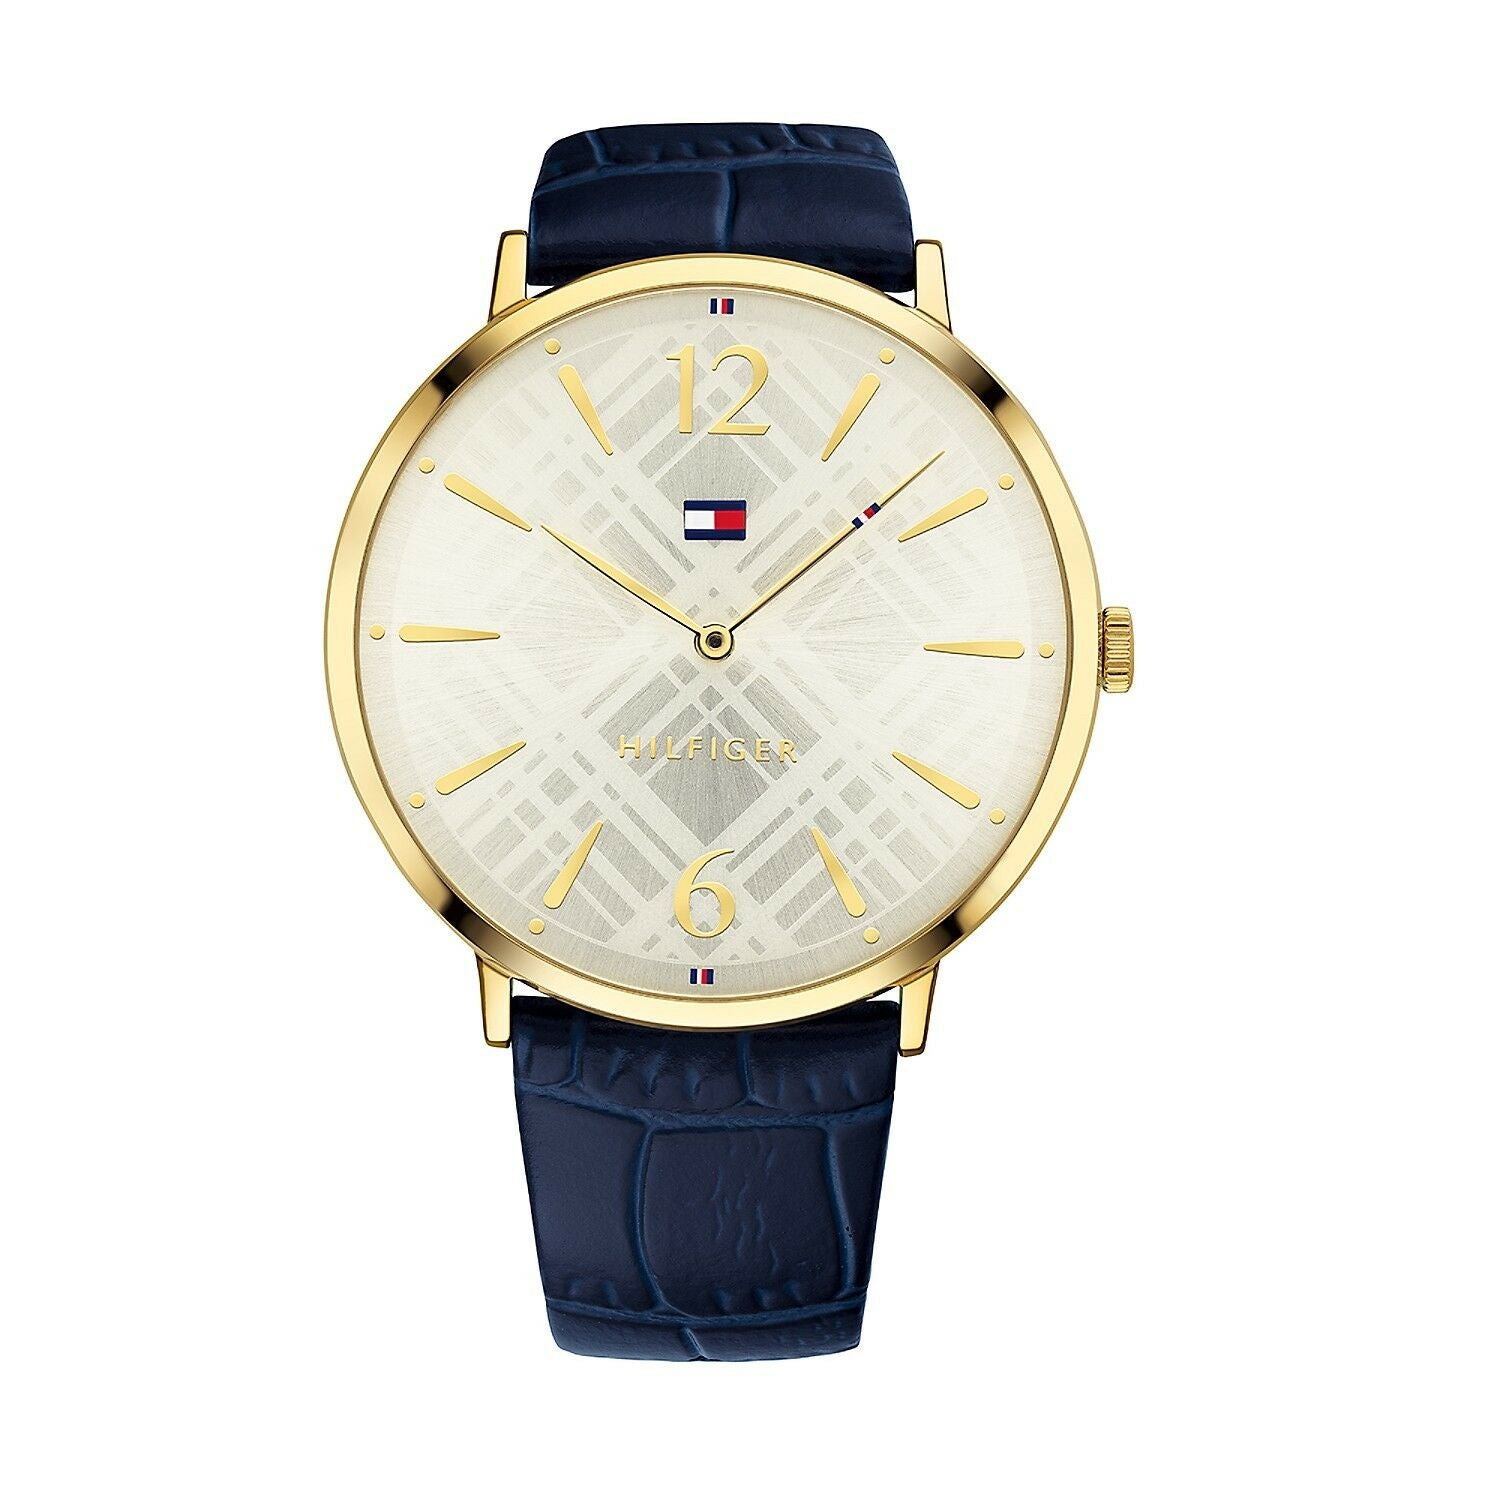 Tommy Hilfiger Women's Gold Classic Watch With Blue Leather Band 1781843 $145